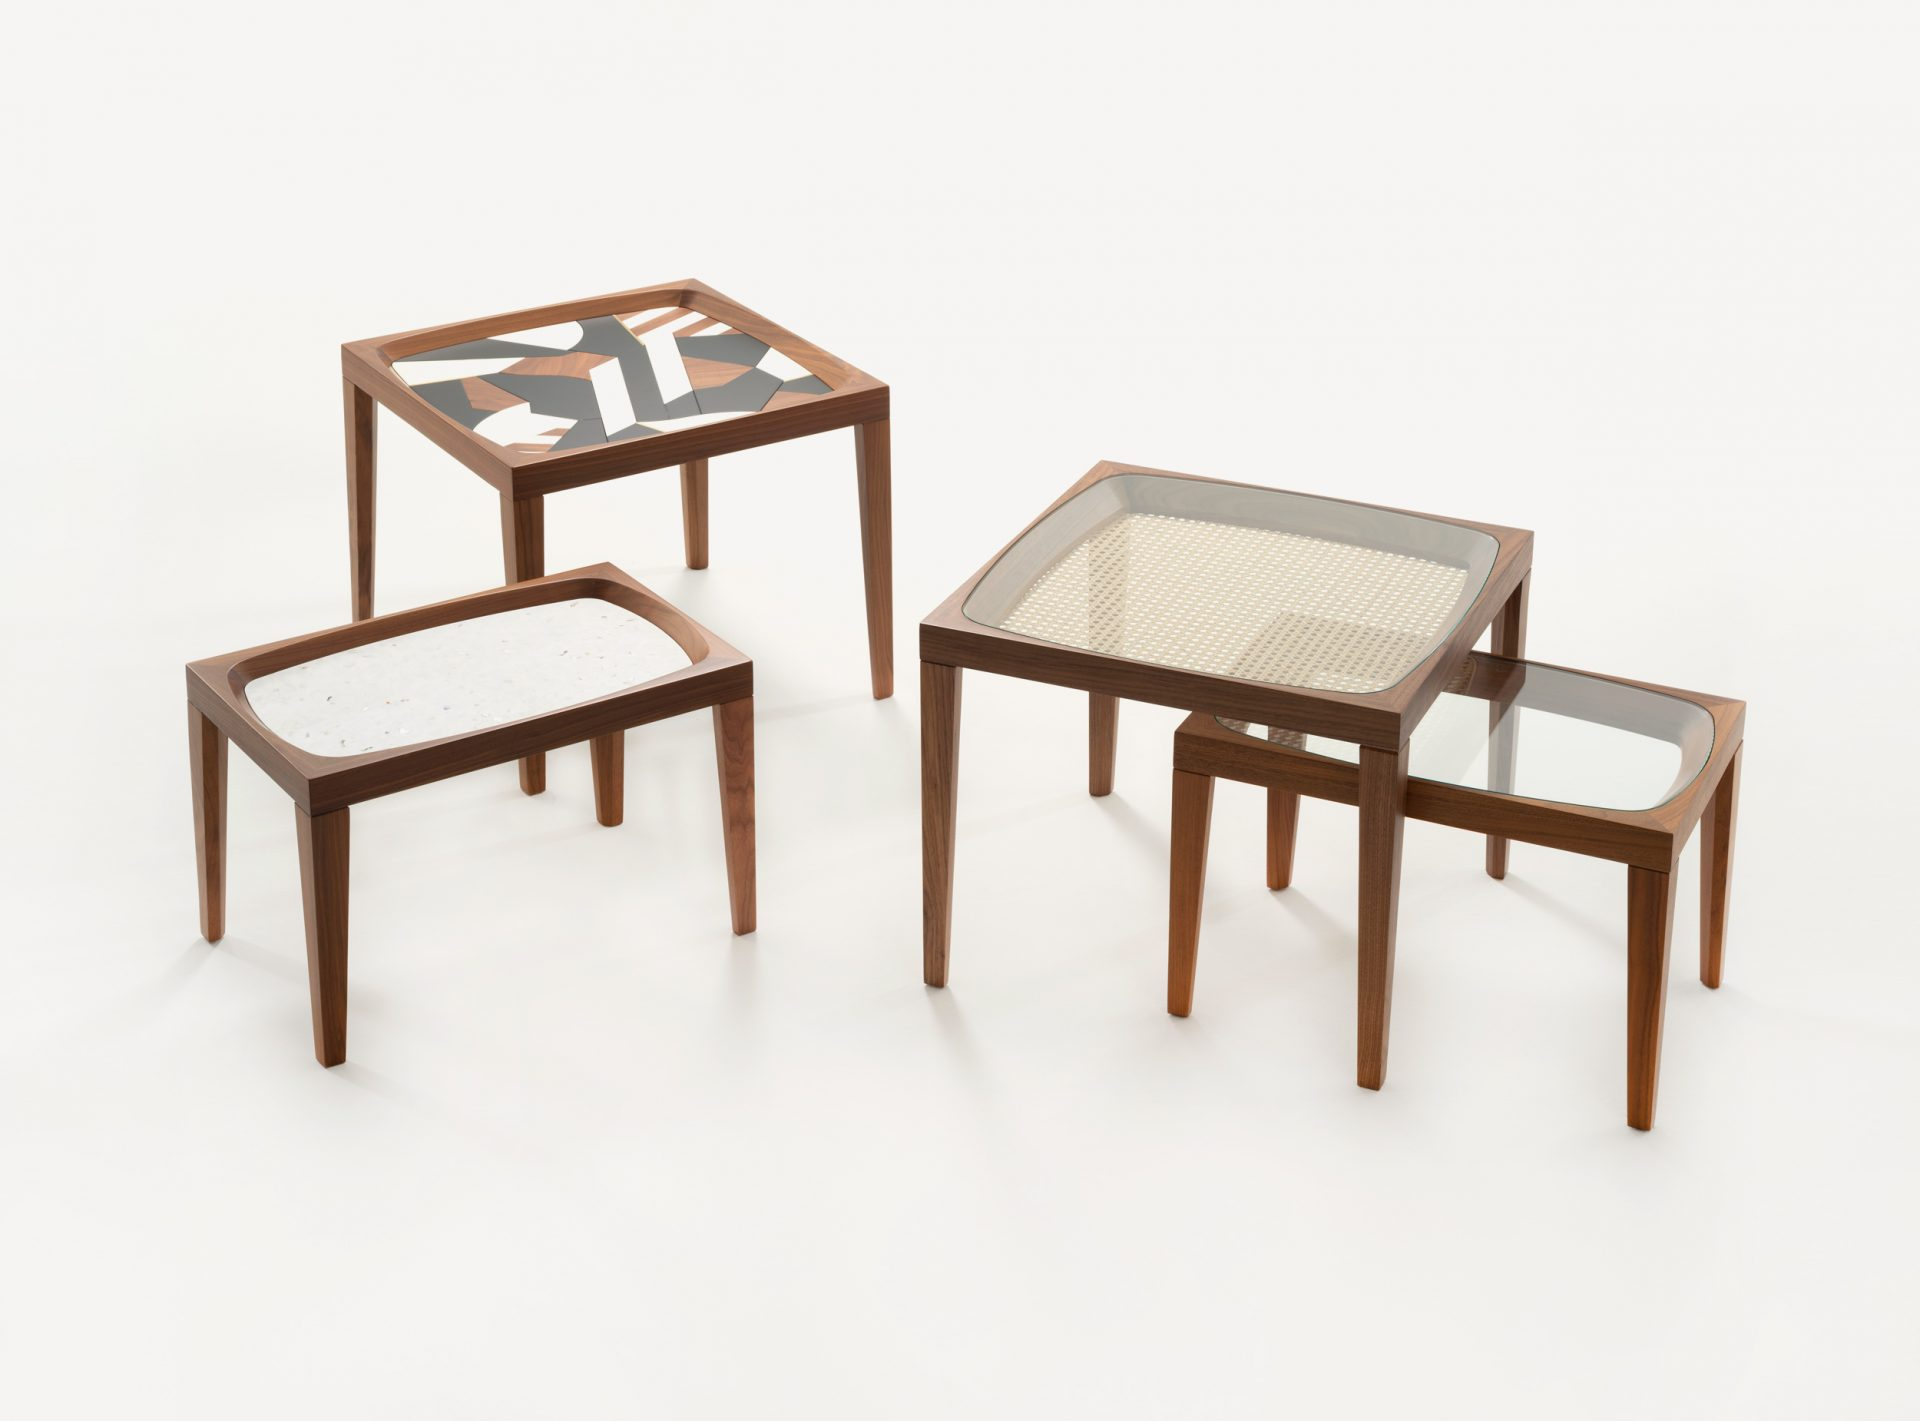 Goodwood collection of table tops by Morgan